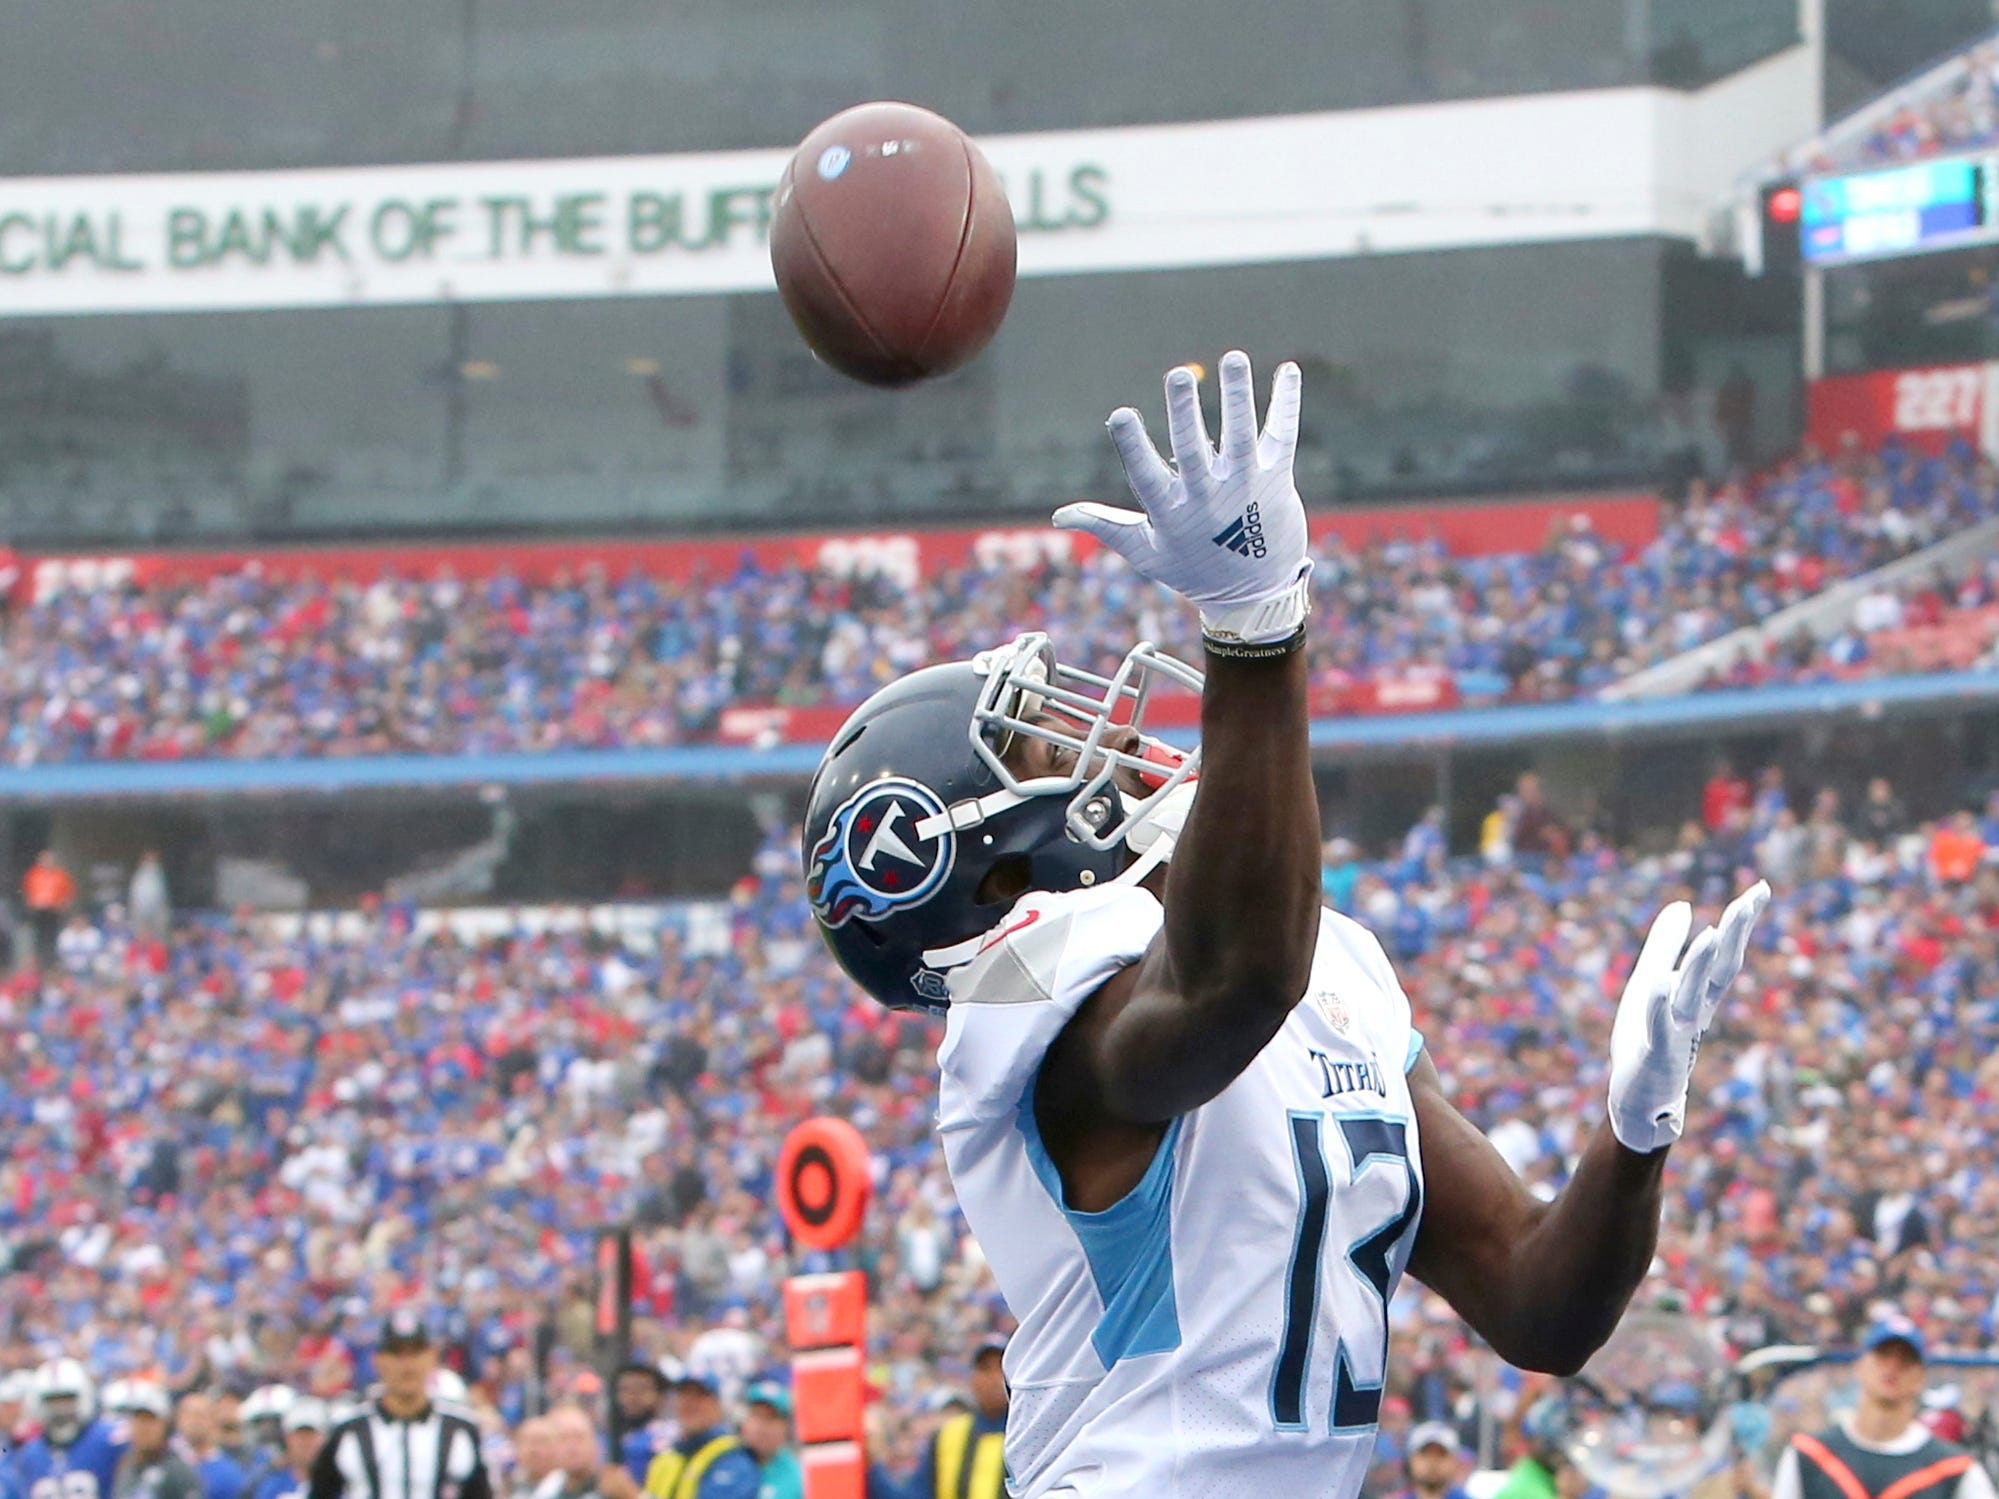 Tennessee Titans wide receiver Taywan Taylor (13) is unable to catch a pass from quarterback Marcus Mariota, not pictured, during the first half of an NFL football game against the Buffalo Bills, Sunday, Oct. 7, 2018, in Orchard Park, N.Y.